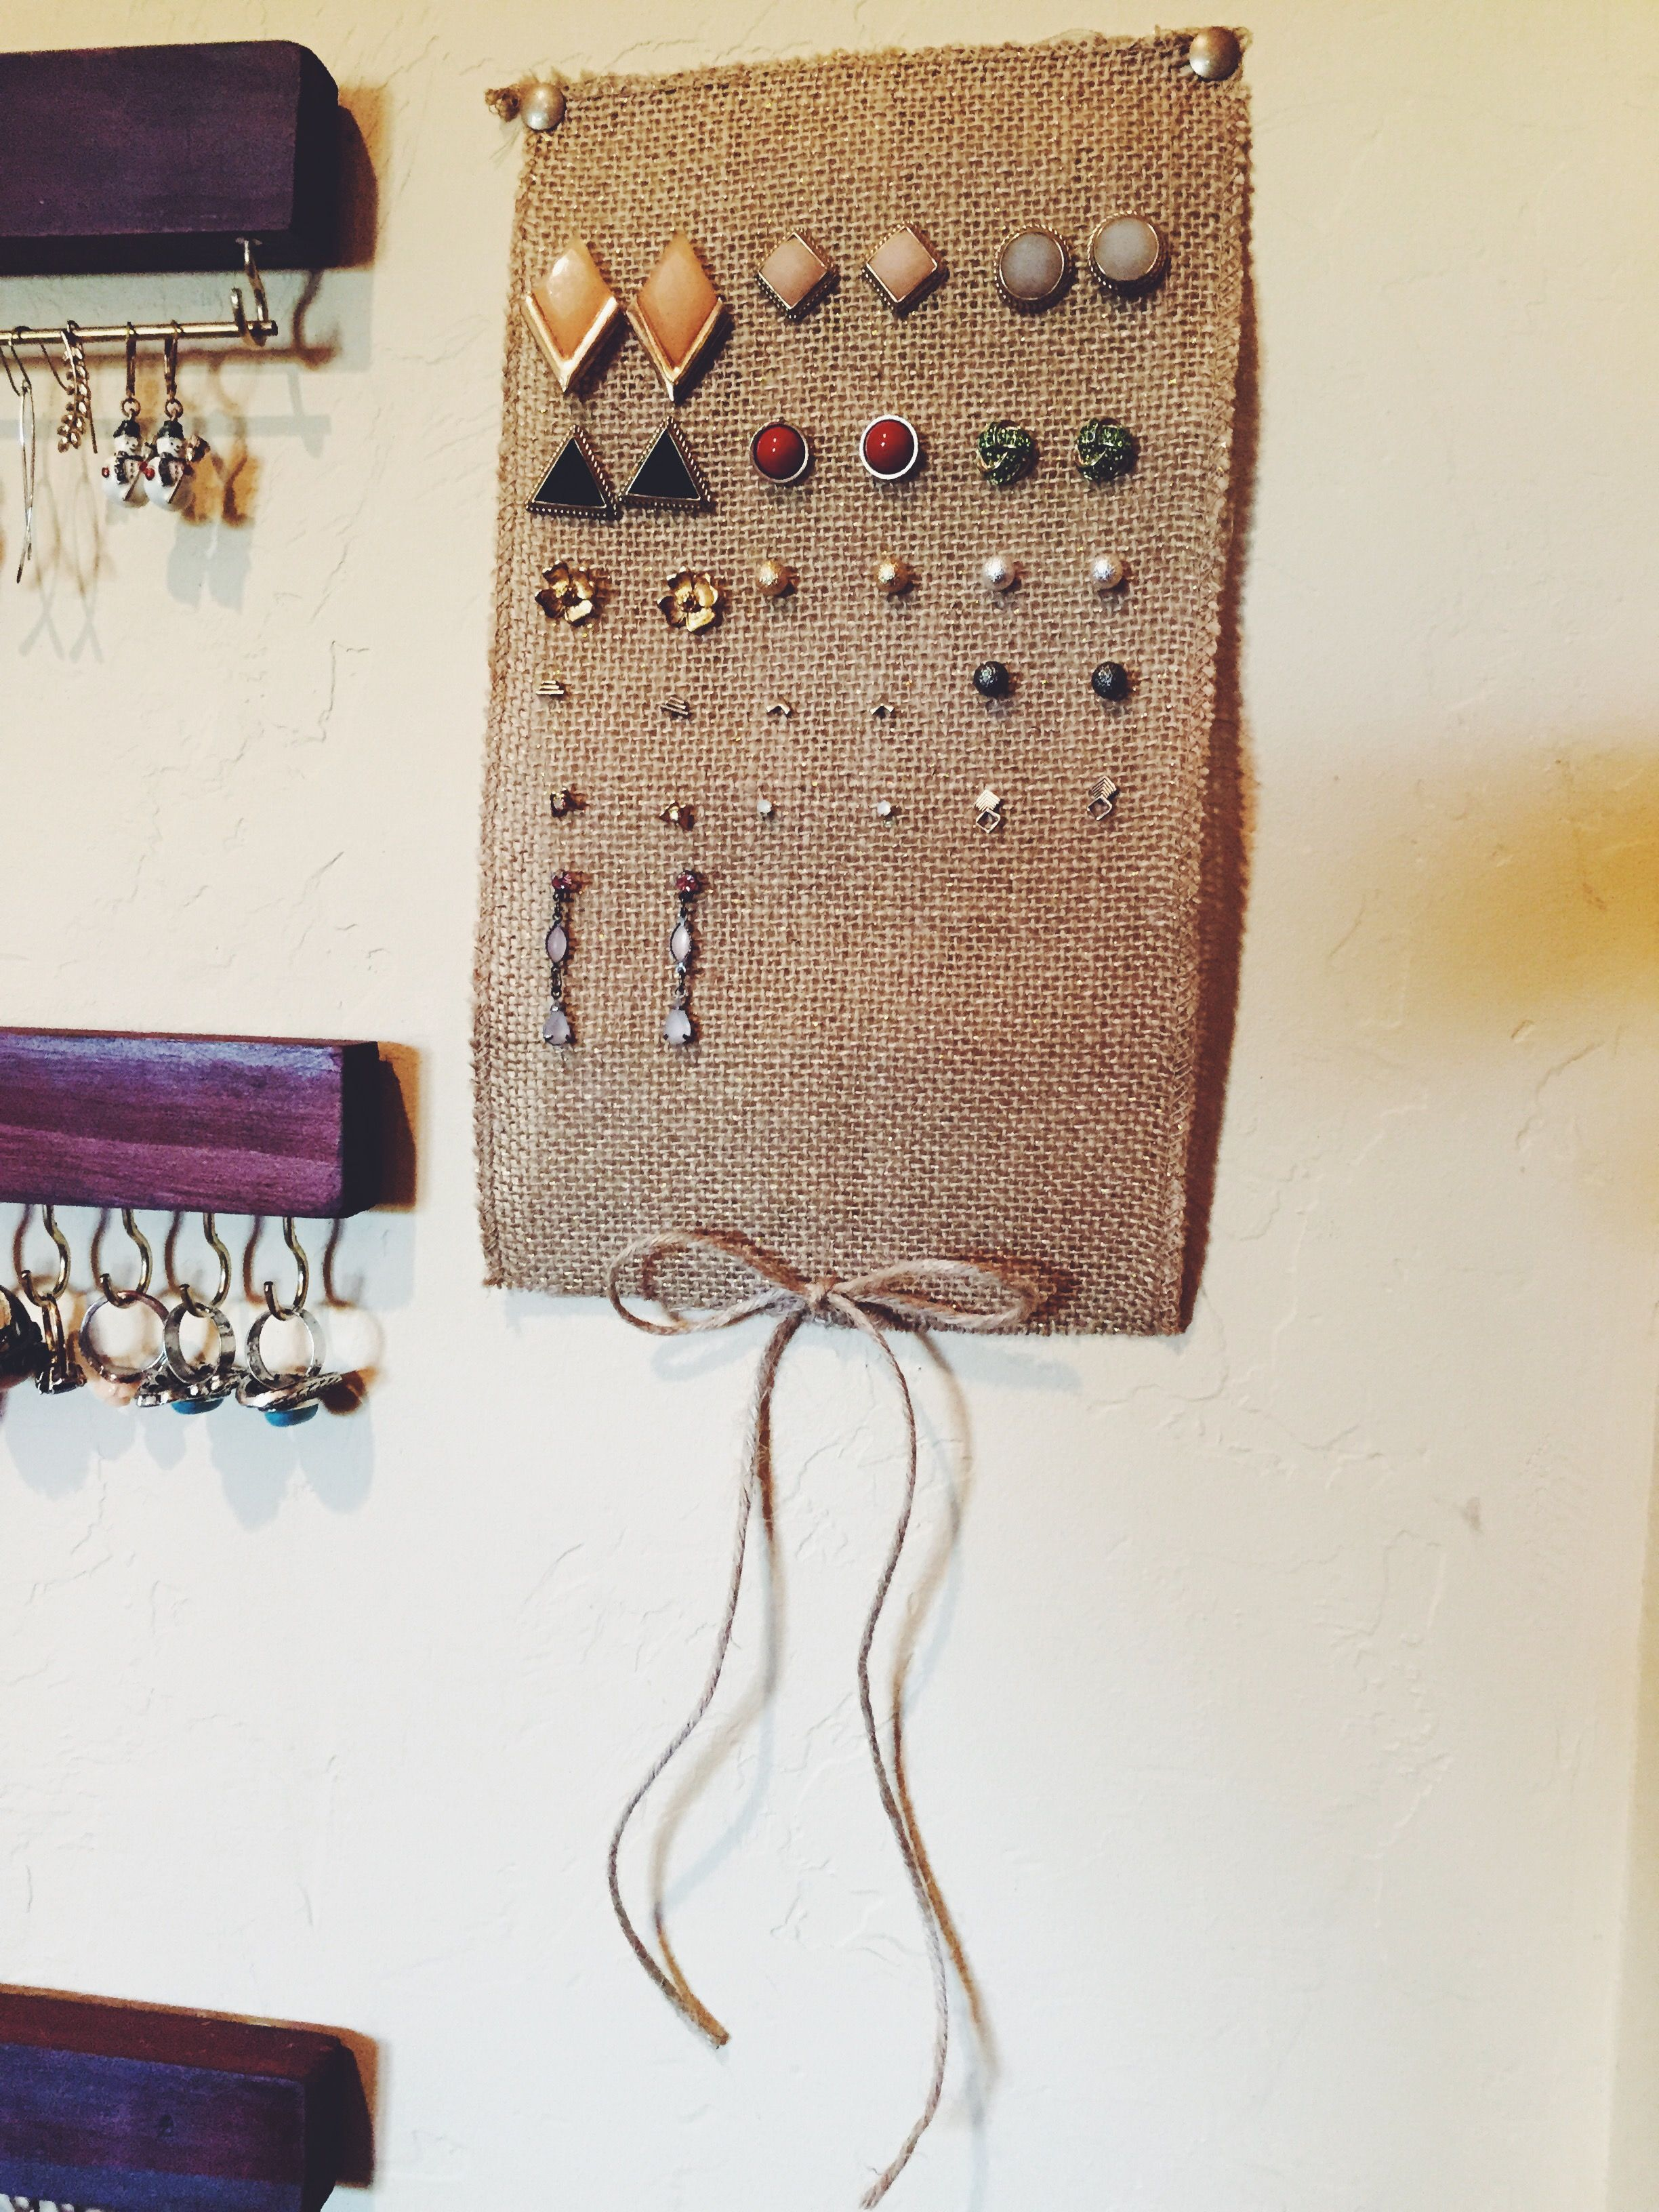 Made This Burlap Earring Holder To Hold My Stud Earrings I